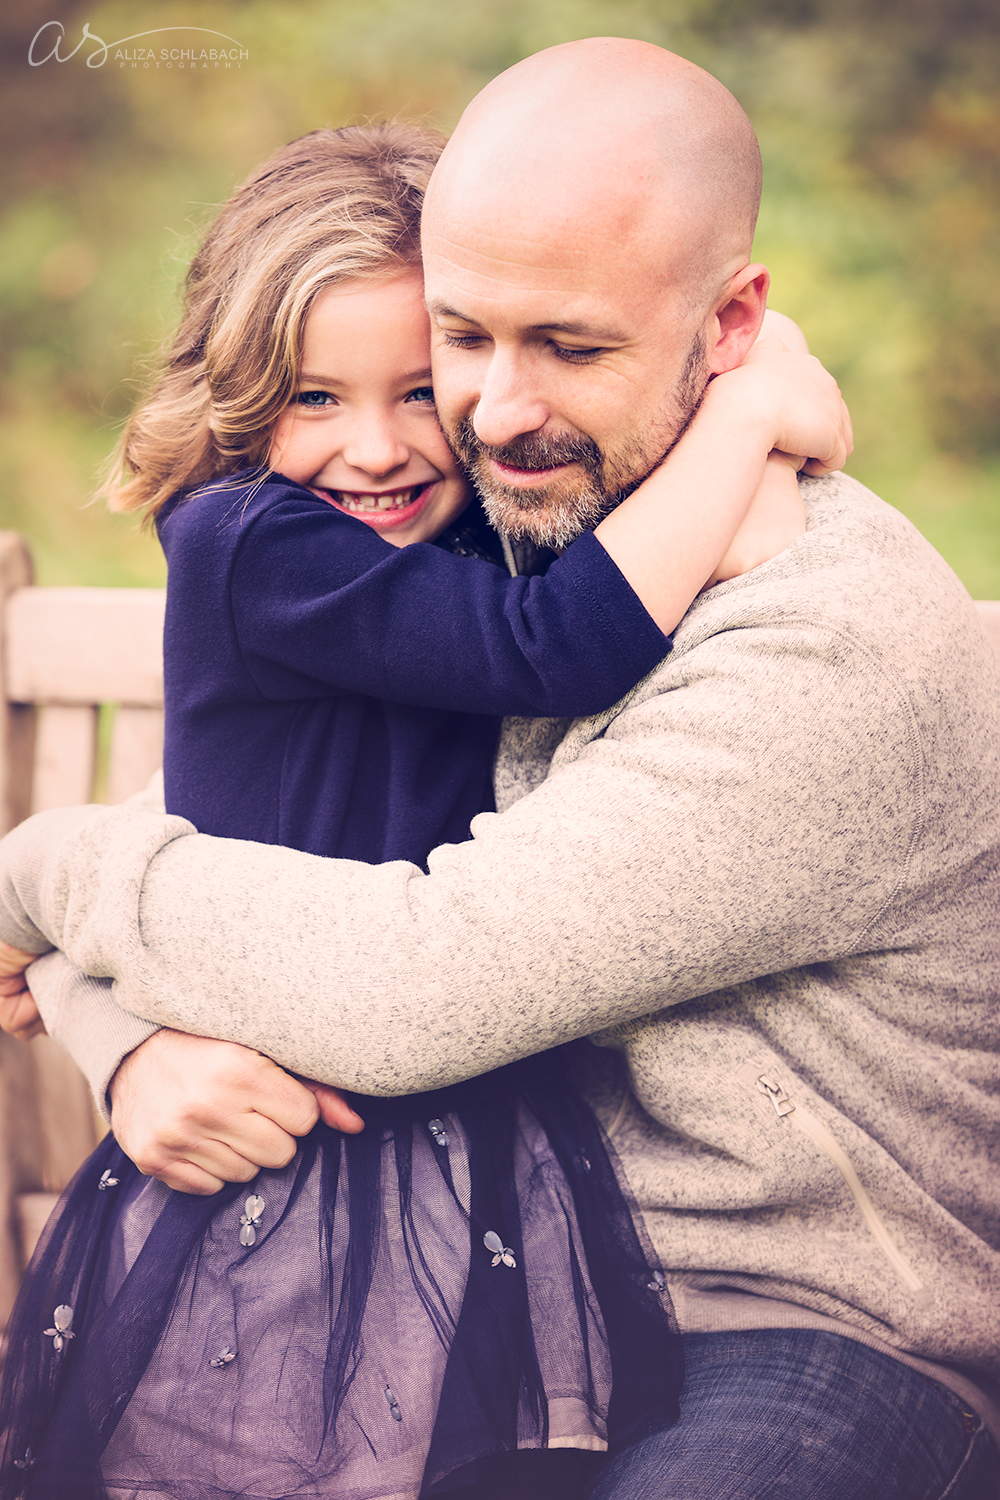 Photo of a cute girl smiling and hugging her bald father